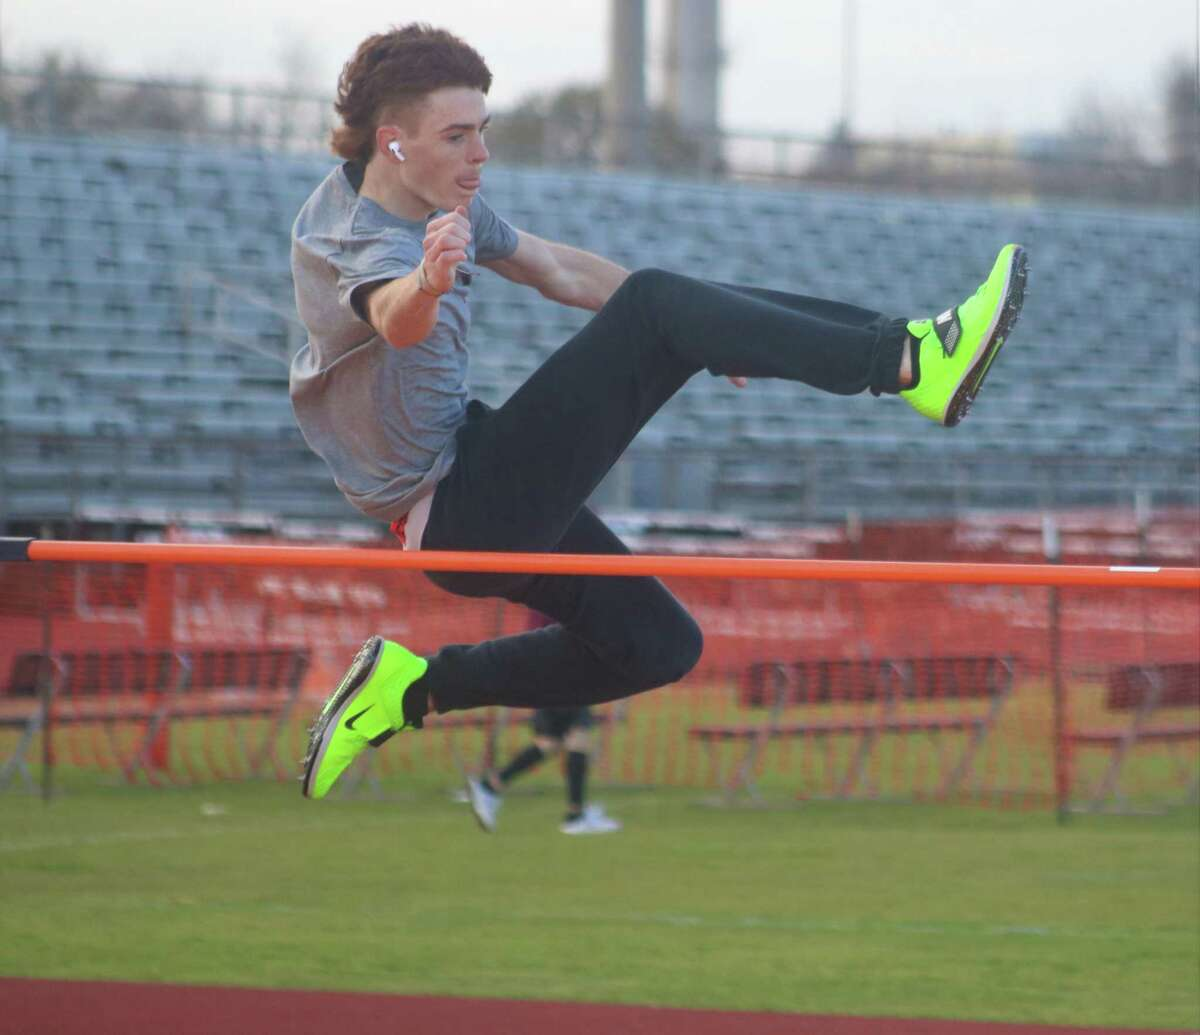 Kaden Harvey had an easy time clearing the bar during a Wednesday workout. It gets much more serious starting Friday when he competes in the Kethan Relays.